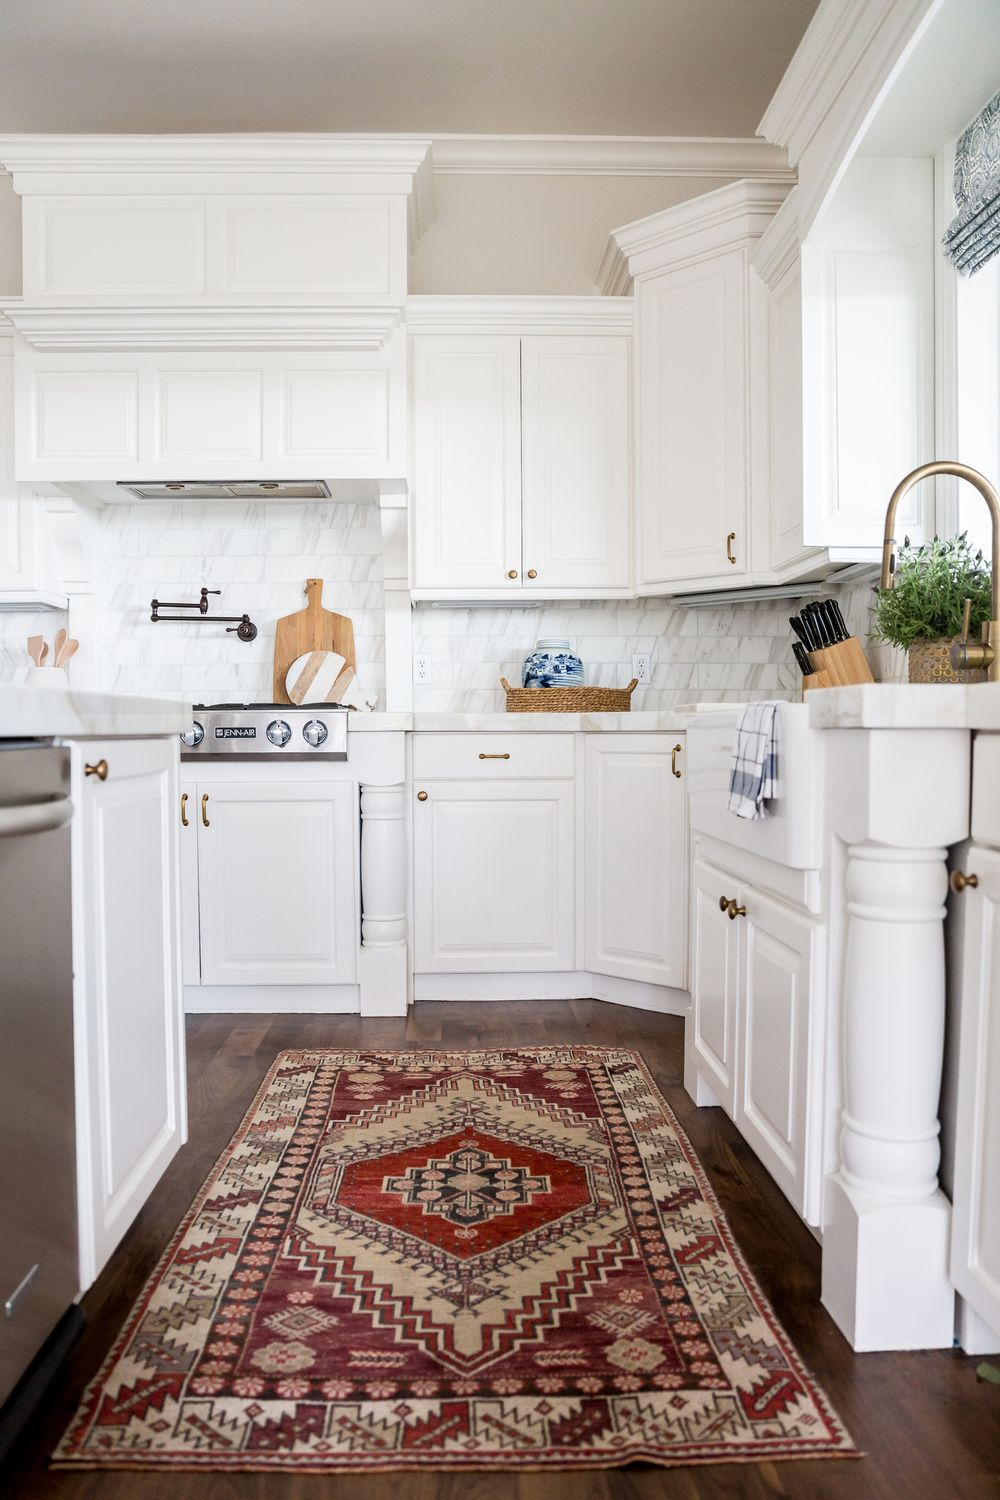 Sourcing Antique Rugs: Part 2 | Studio mcgee, Kitchens and Sinks